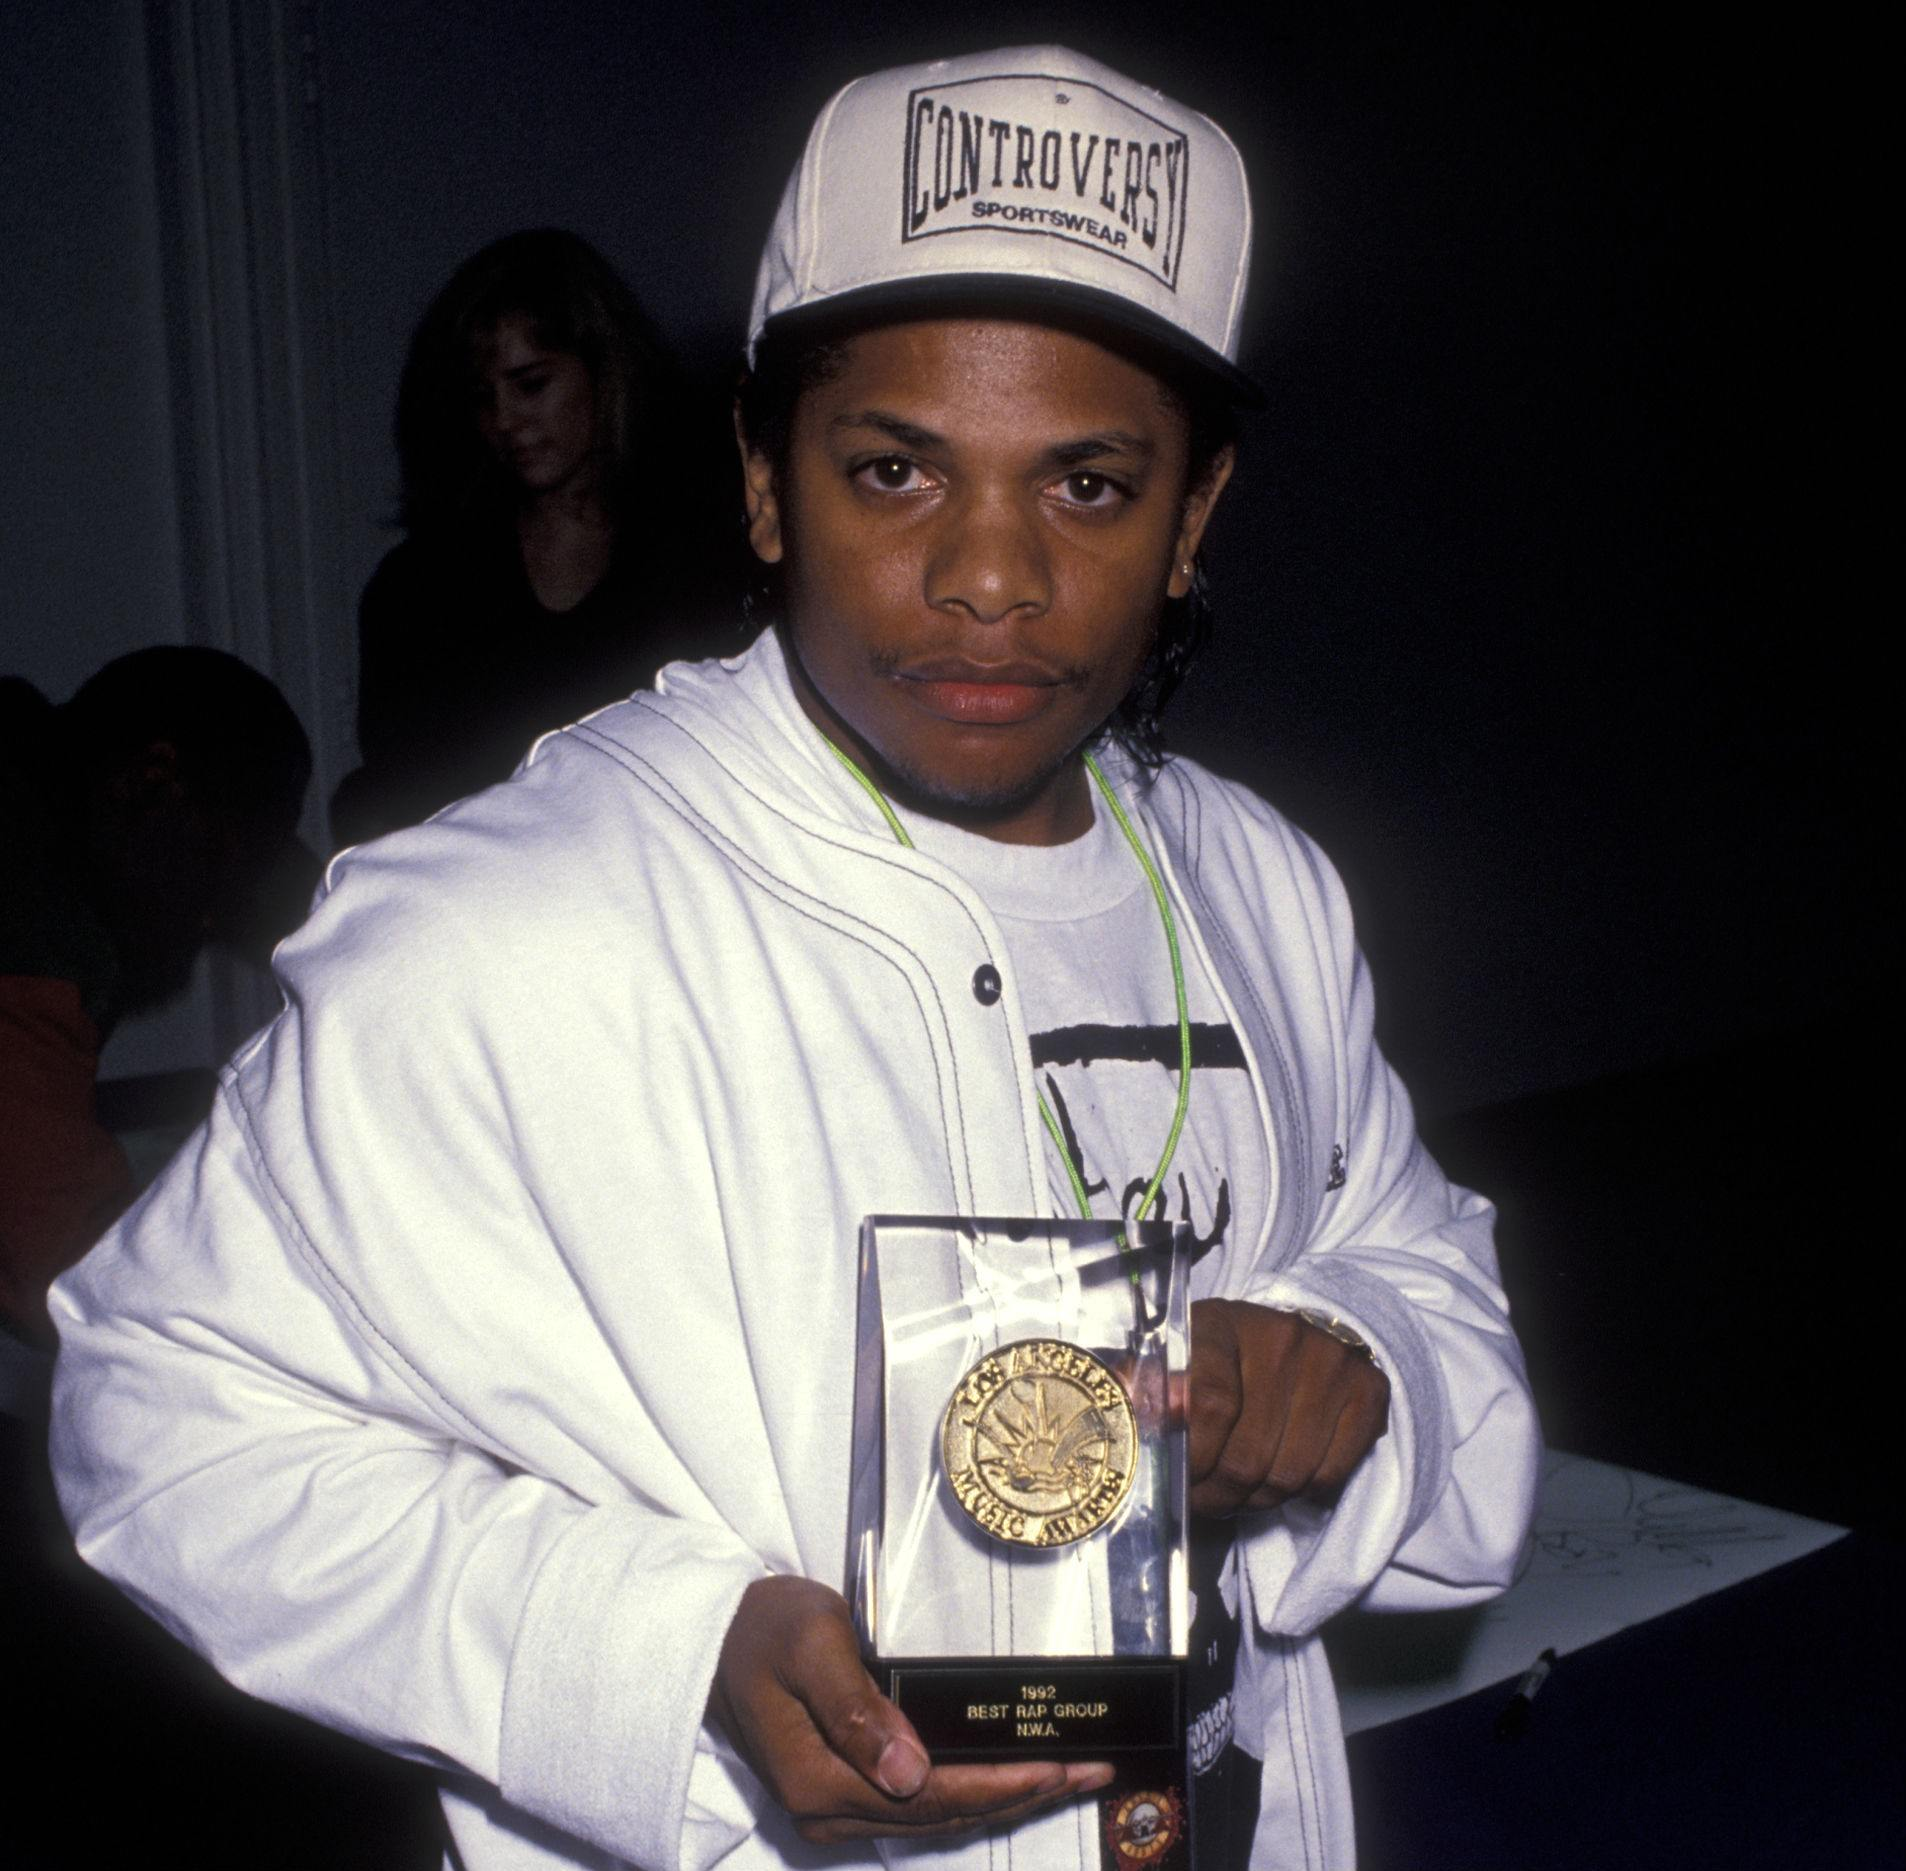 Eazy-E wearing a white jacket holding a plaque